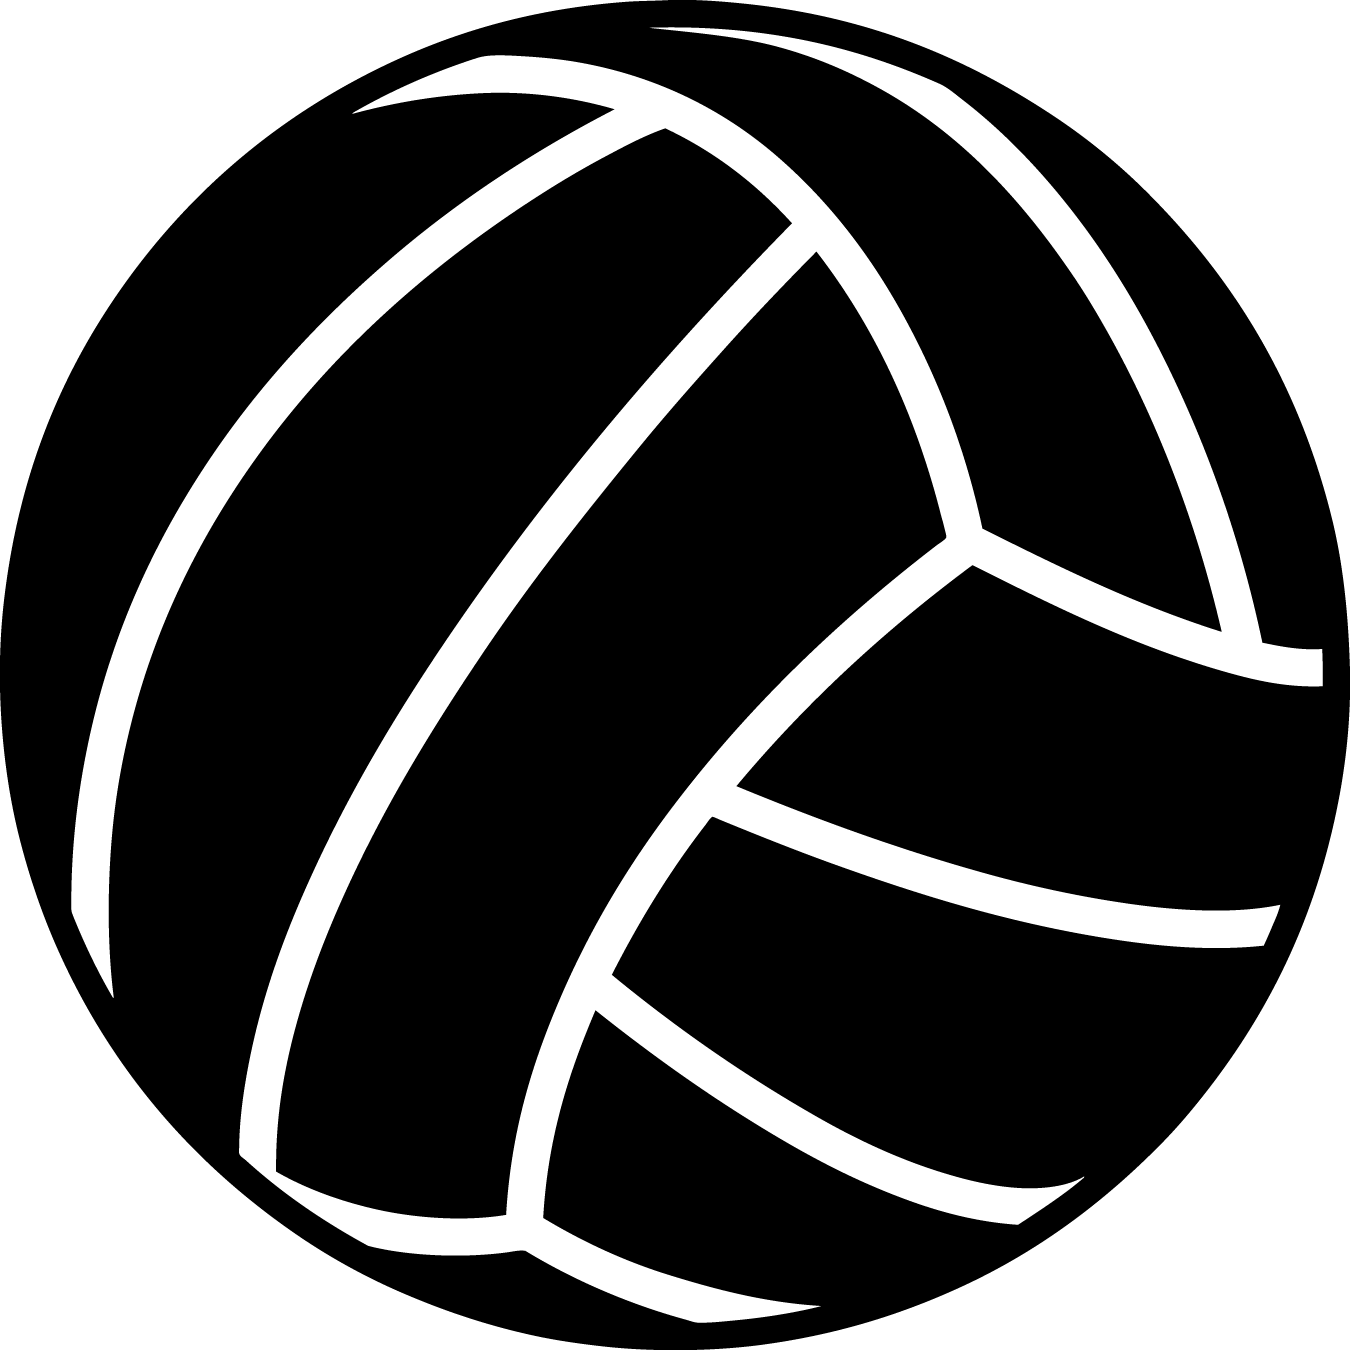 volleyball clipart vector - photo #21